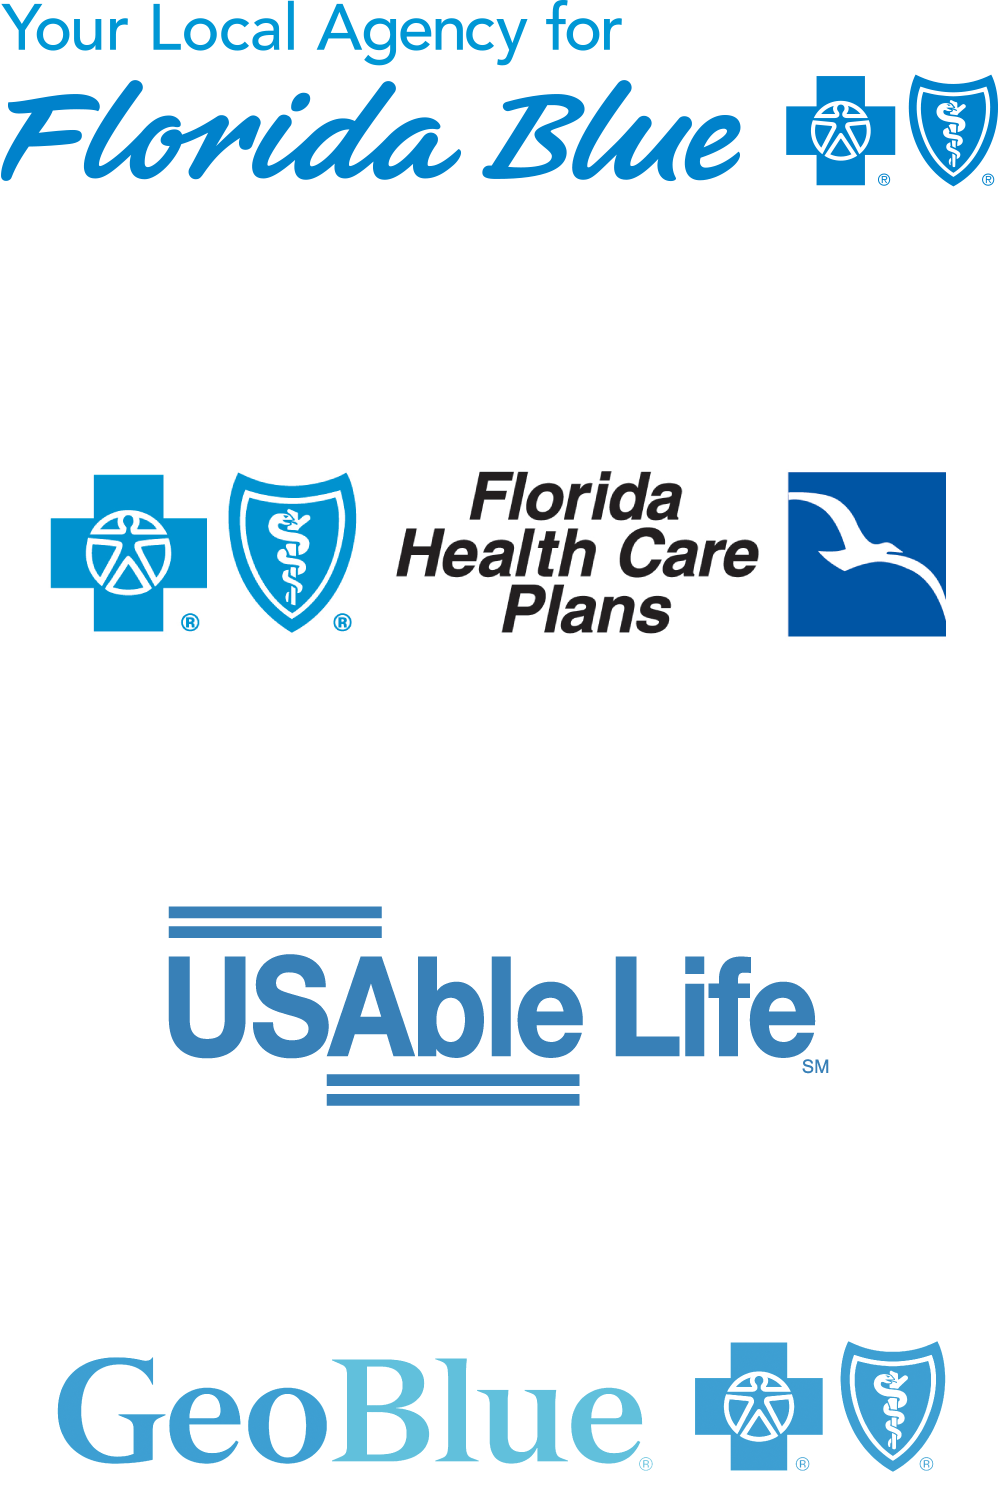 Sunsure - Vendor Logos - Your Local Agency for Florida Blue - Florida Health Care Plans - USAble Life - GeoBlue